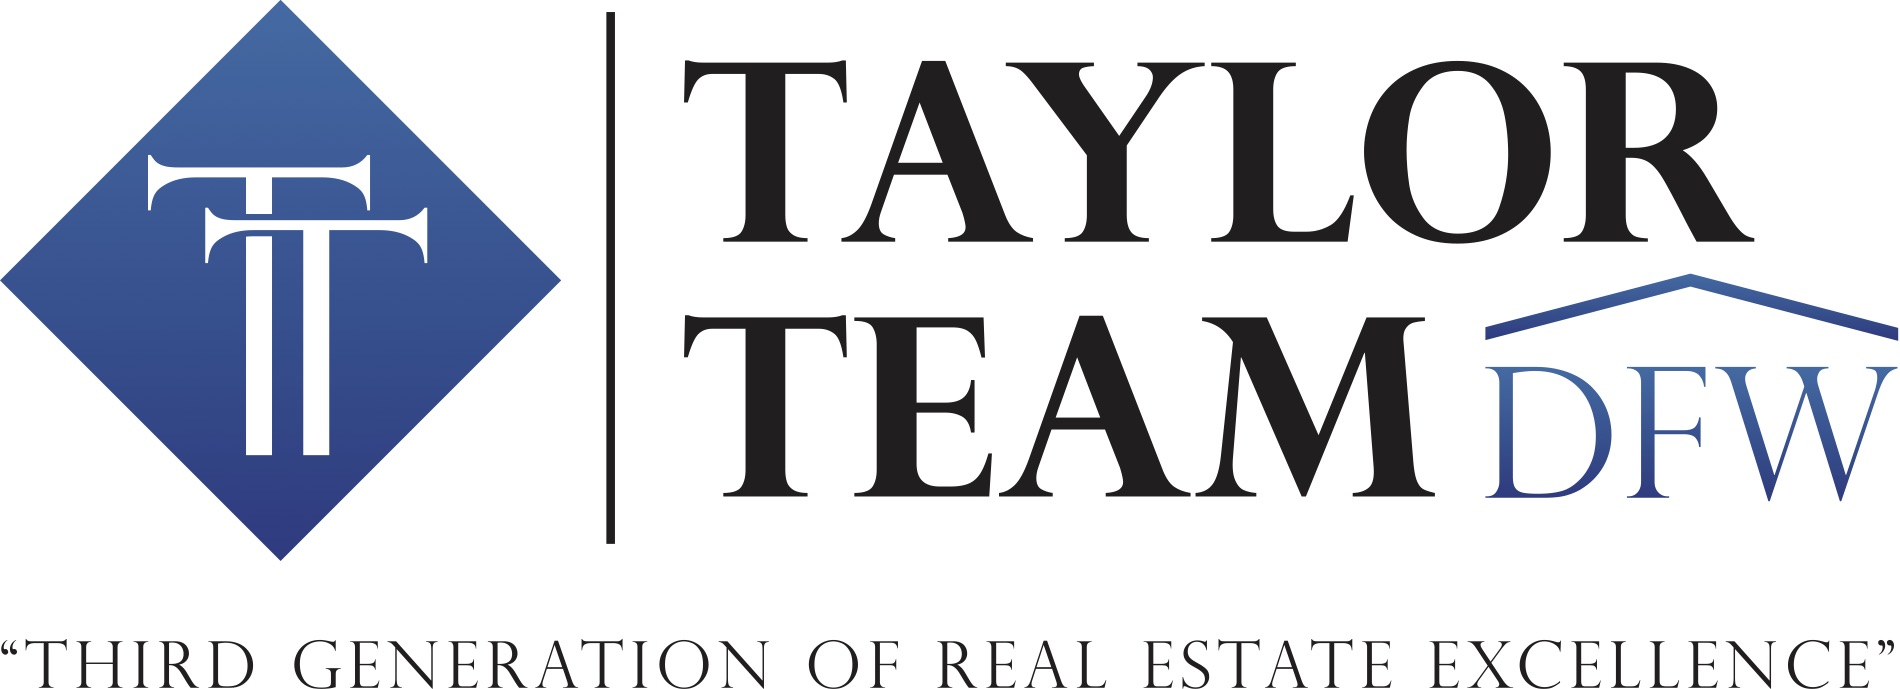 Taylor Team DFW reviews | Real Estate Agents at 3600 Preston Road - Plano TX